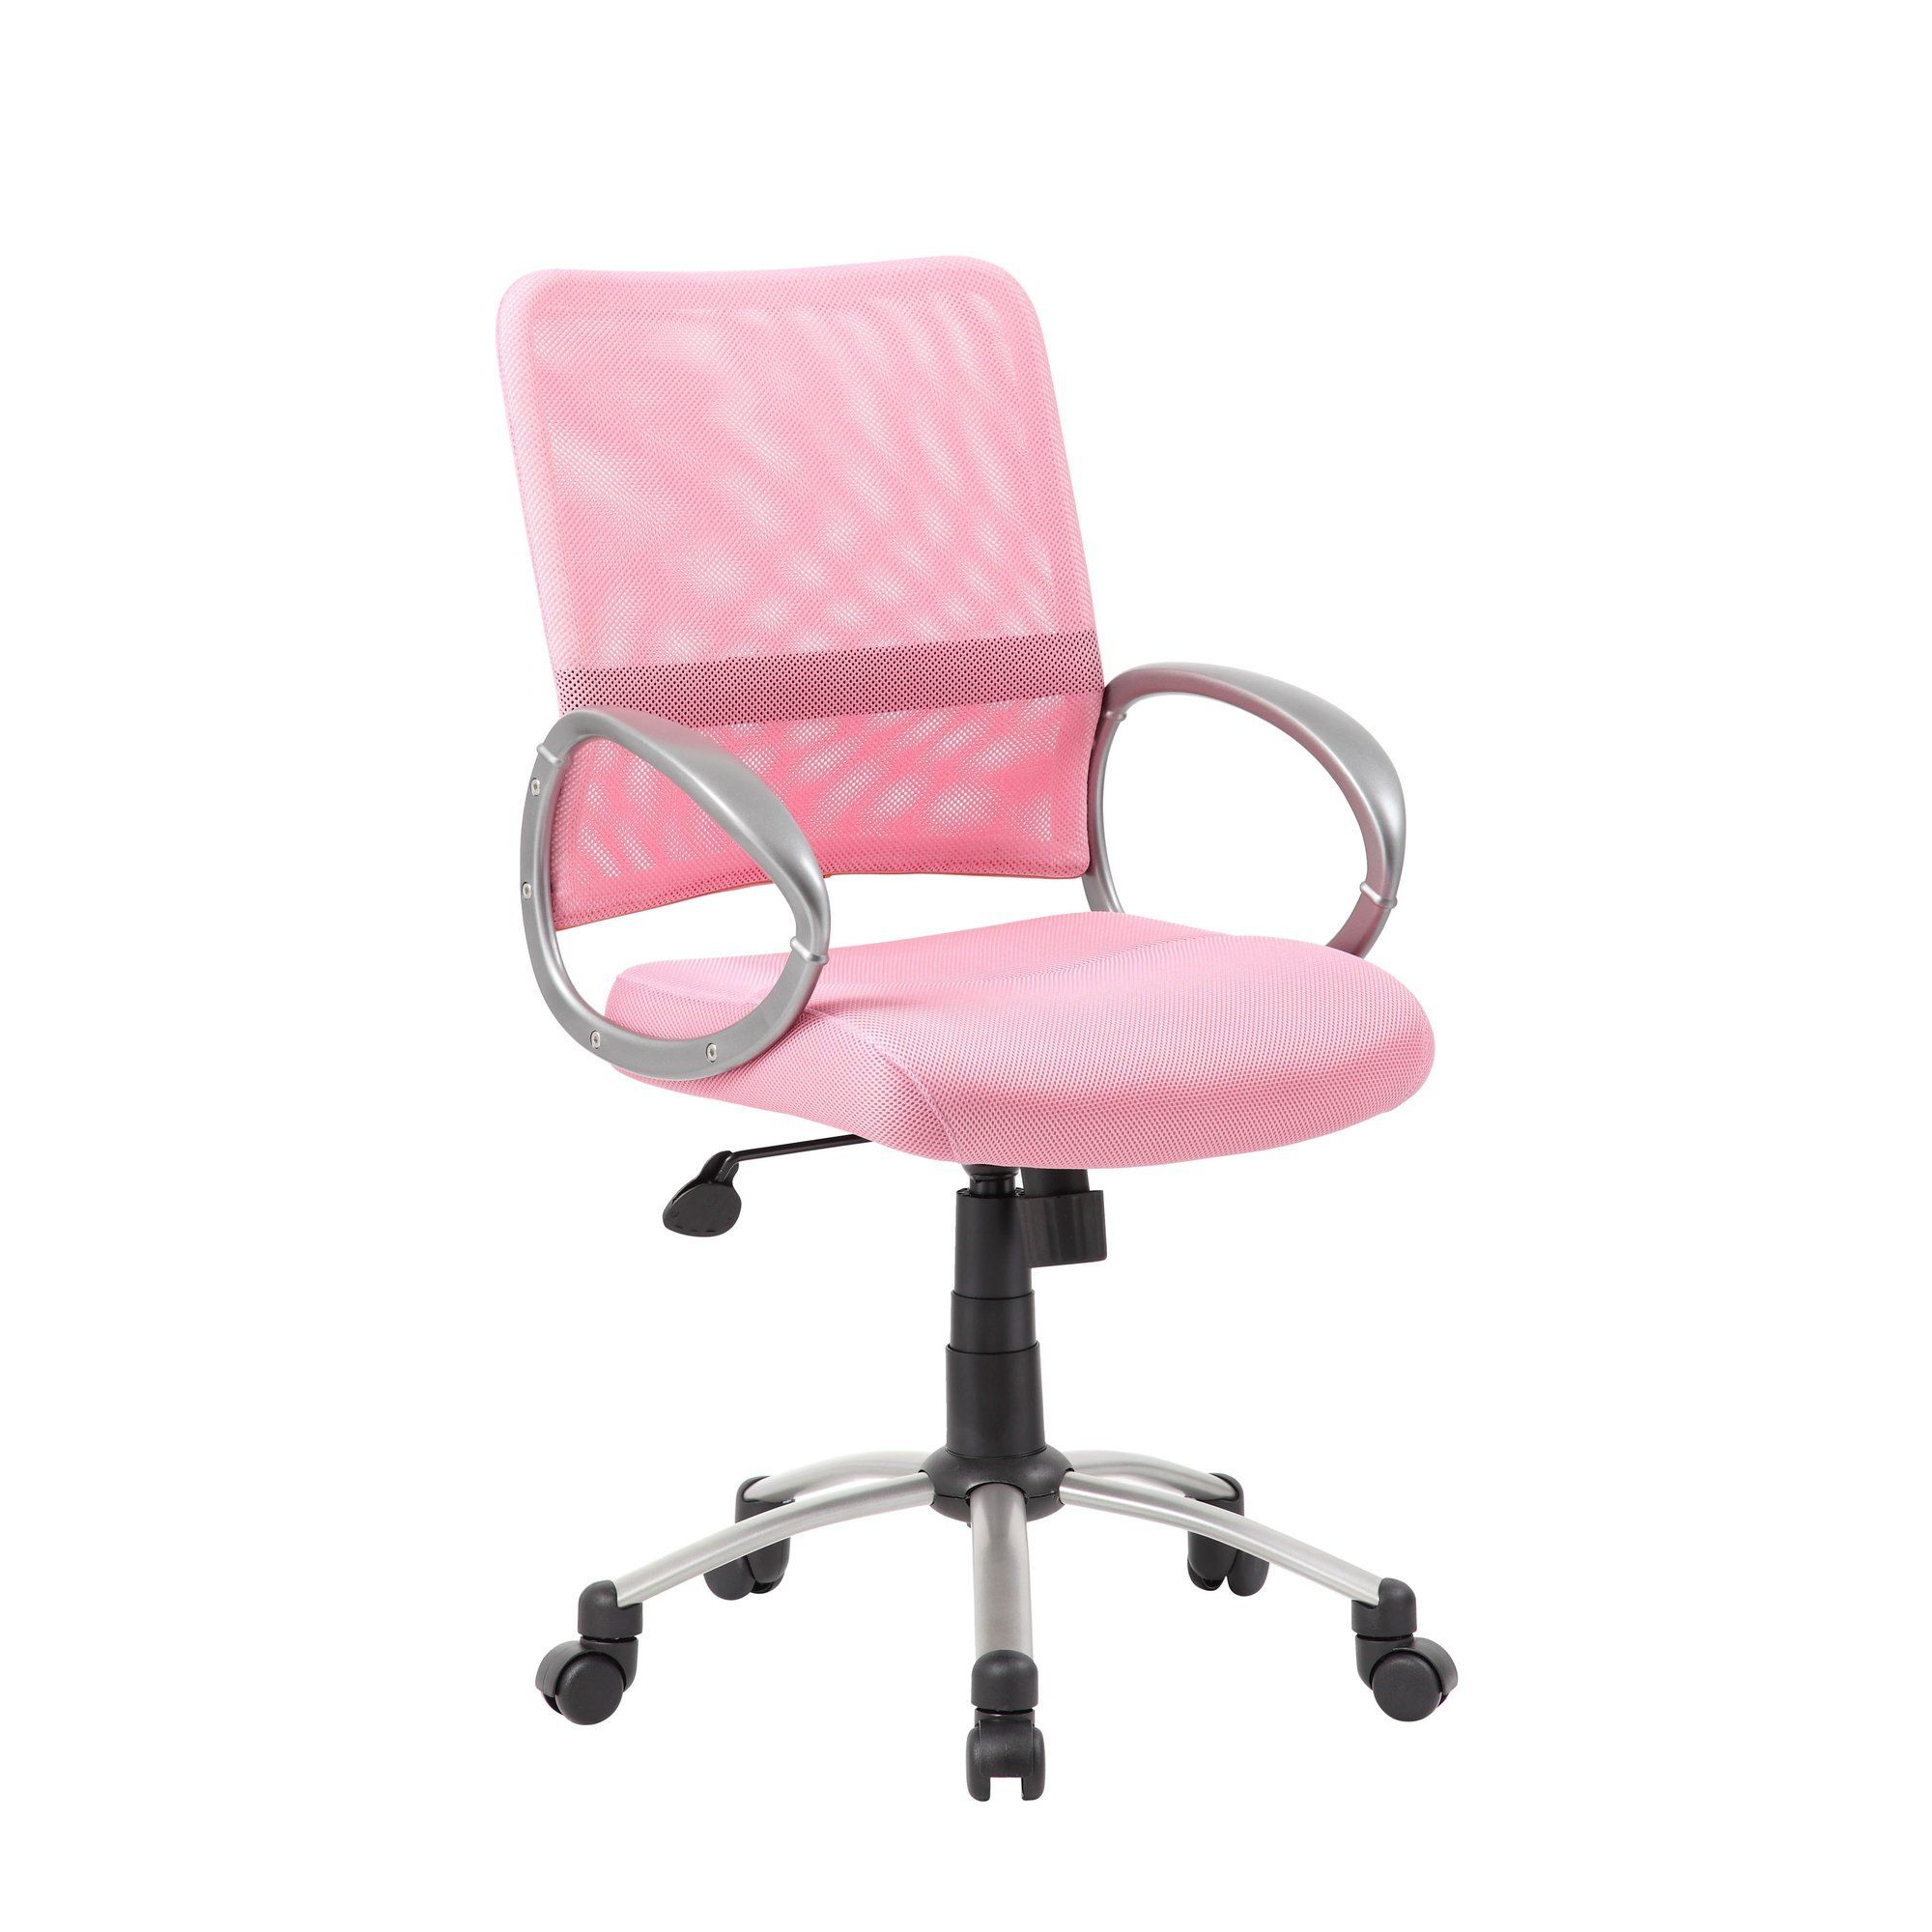 inspiration uk pink desk chairs designing perfect home about chair remodel with